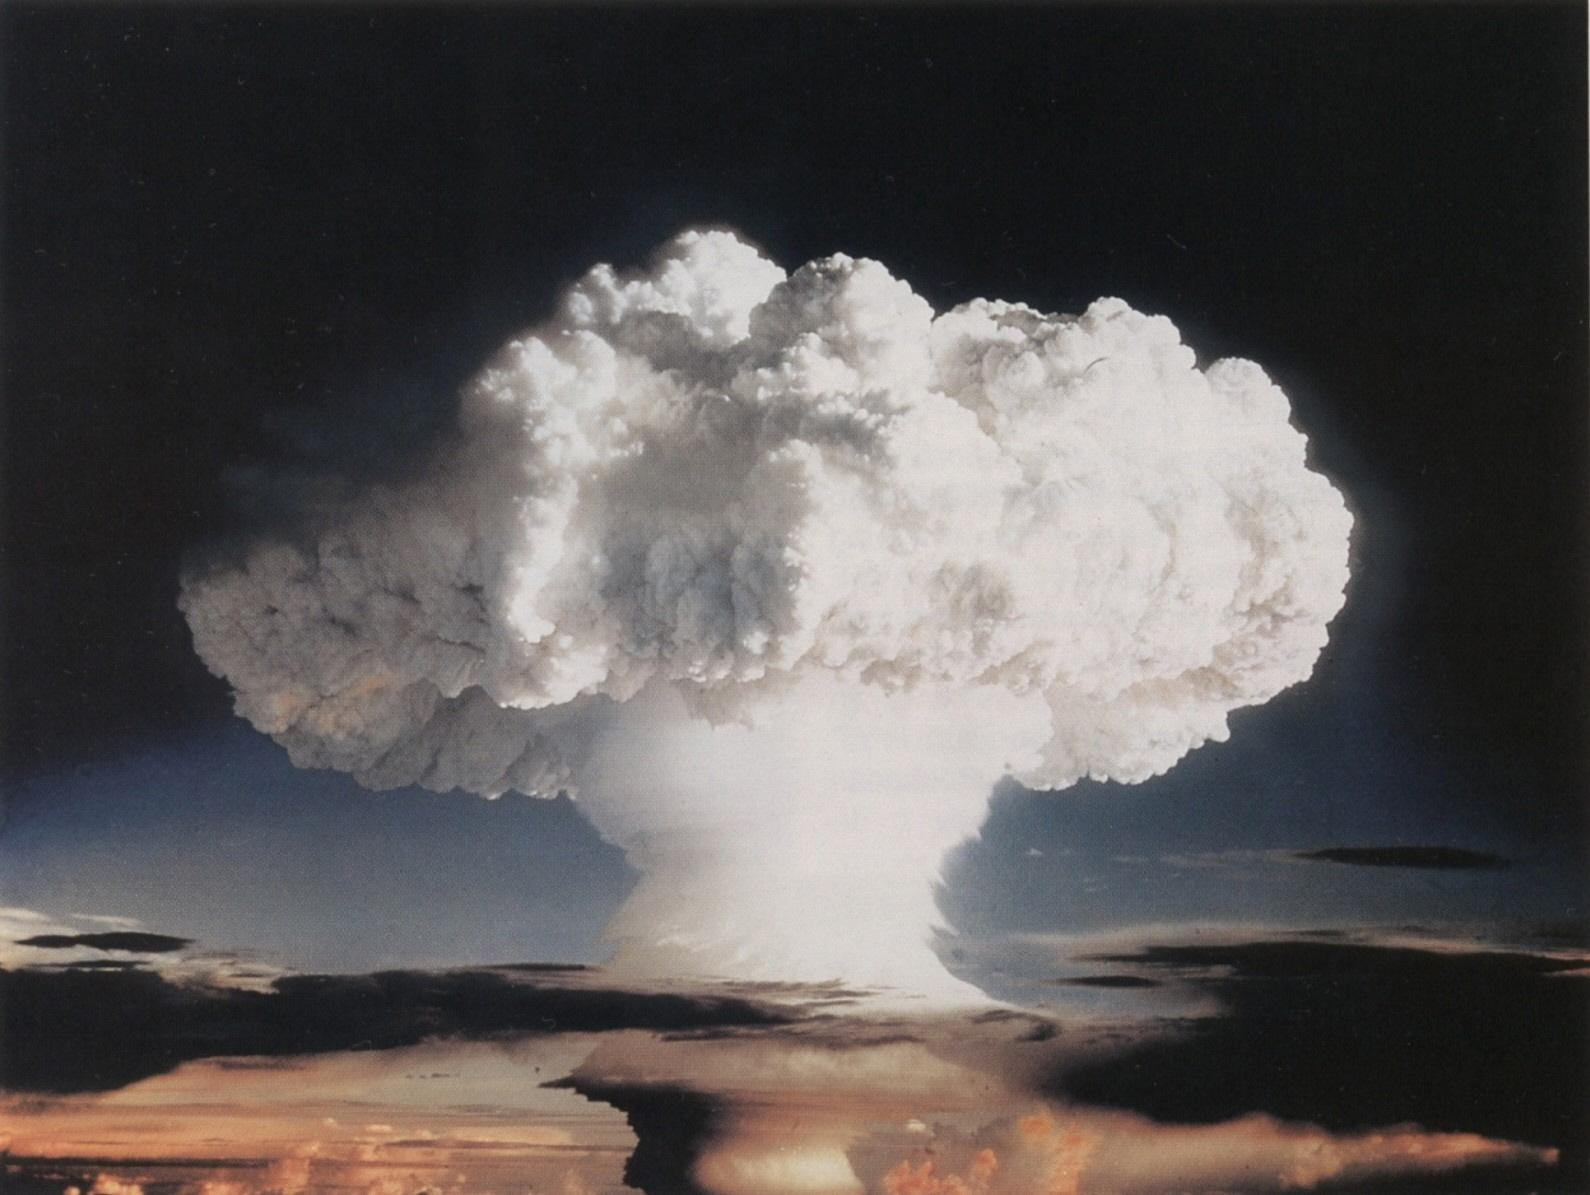 Learn about Nuclear Weapons:NUKE 101 - Take our free in depth online course on the history of nuclear weapons